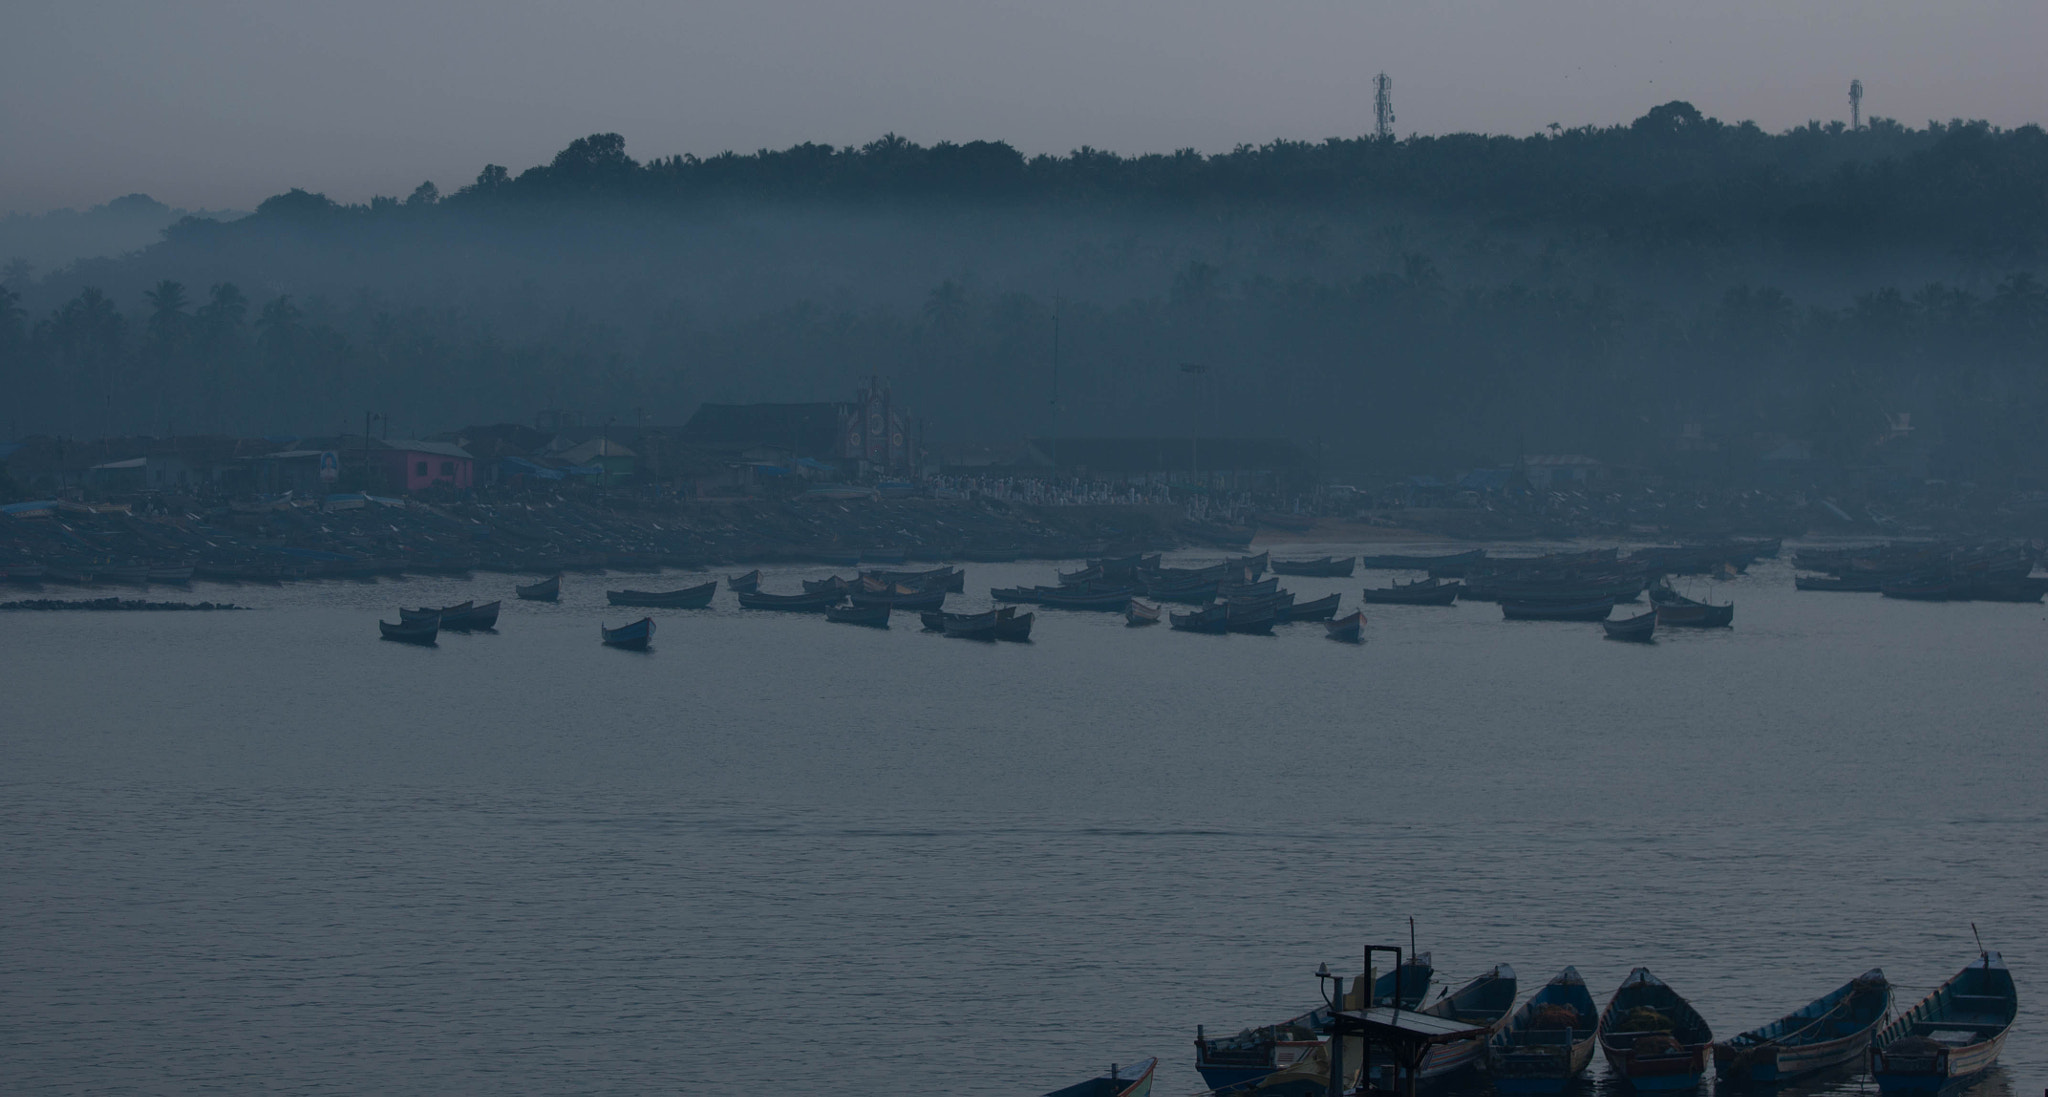 Photograph Morning in Vizhinjam port by Rahul Mohan on 500px